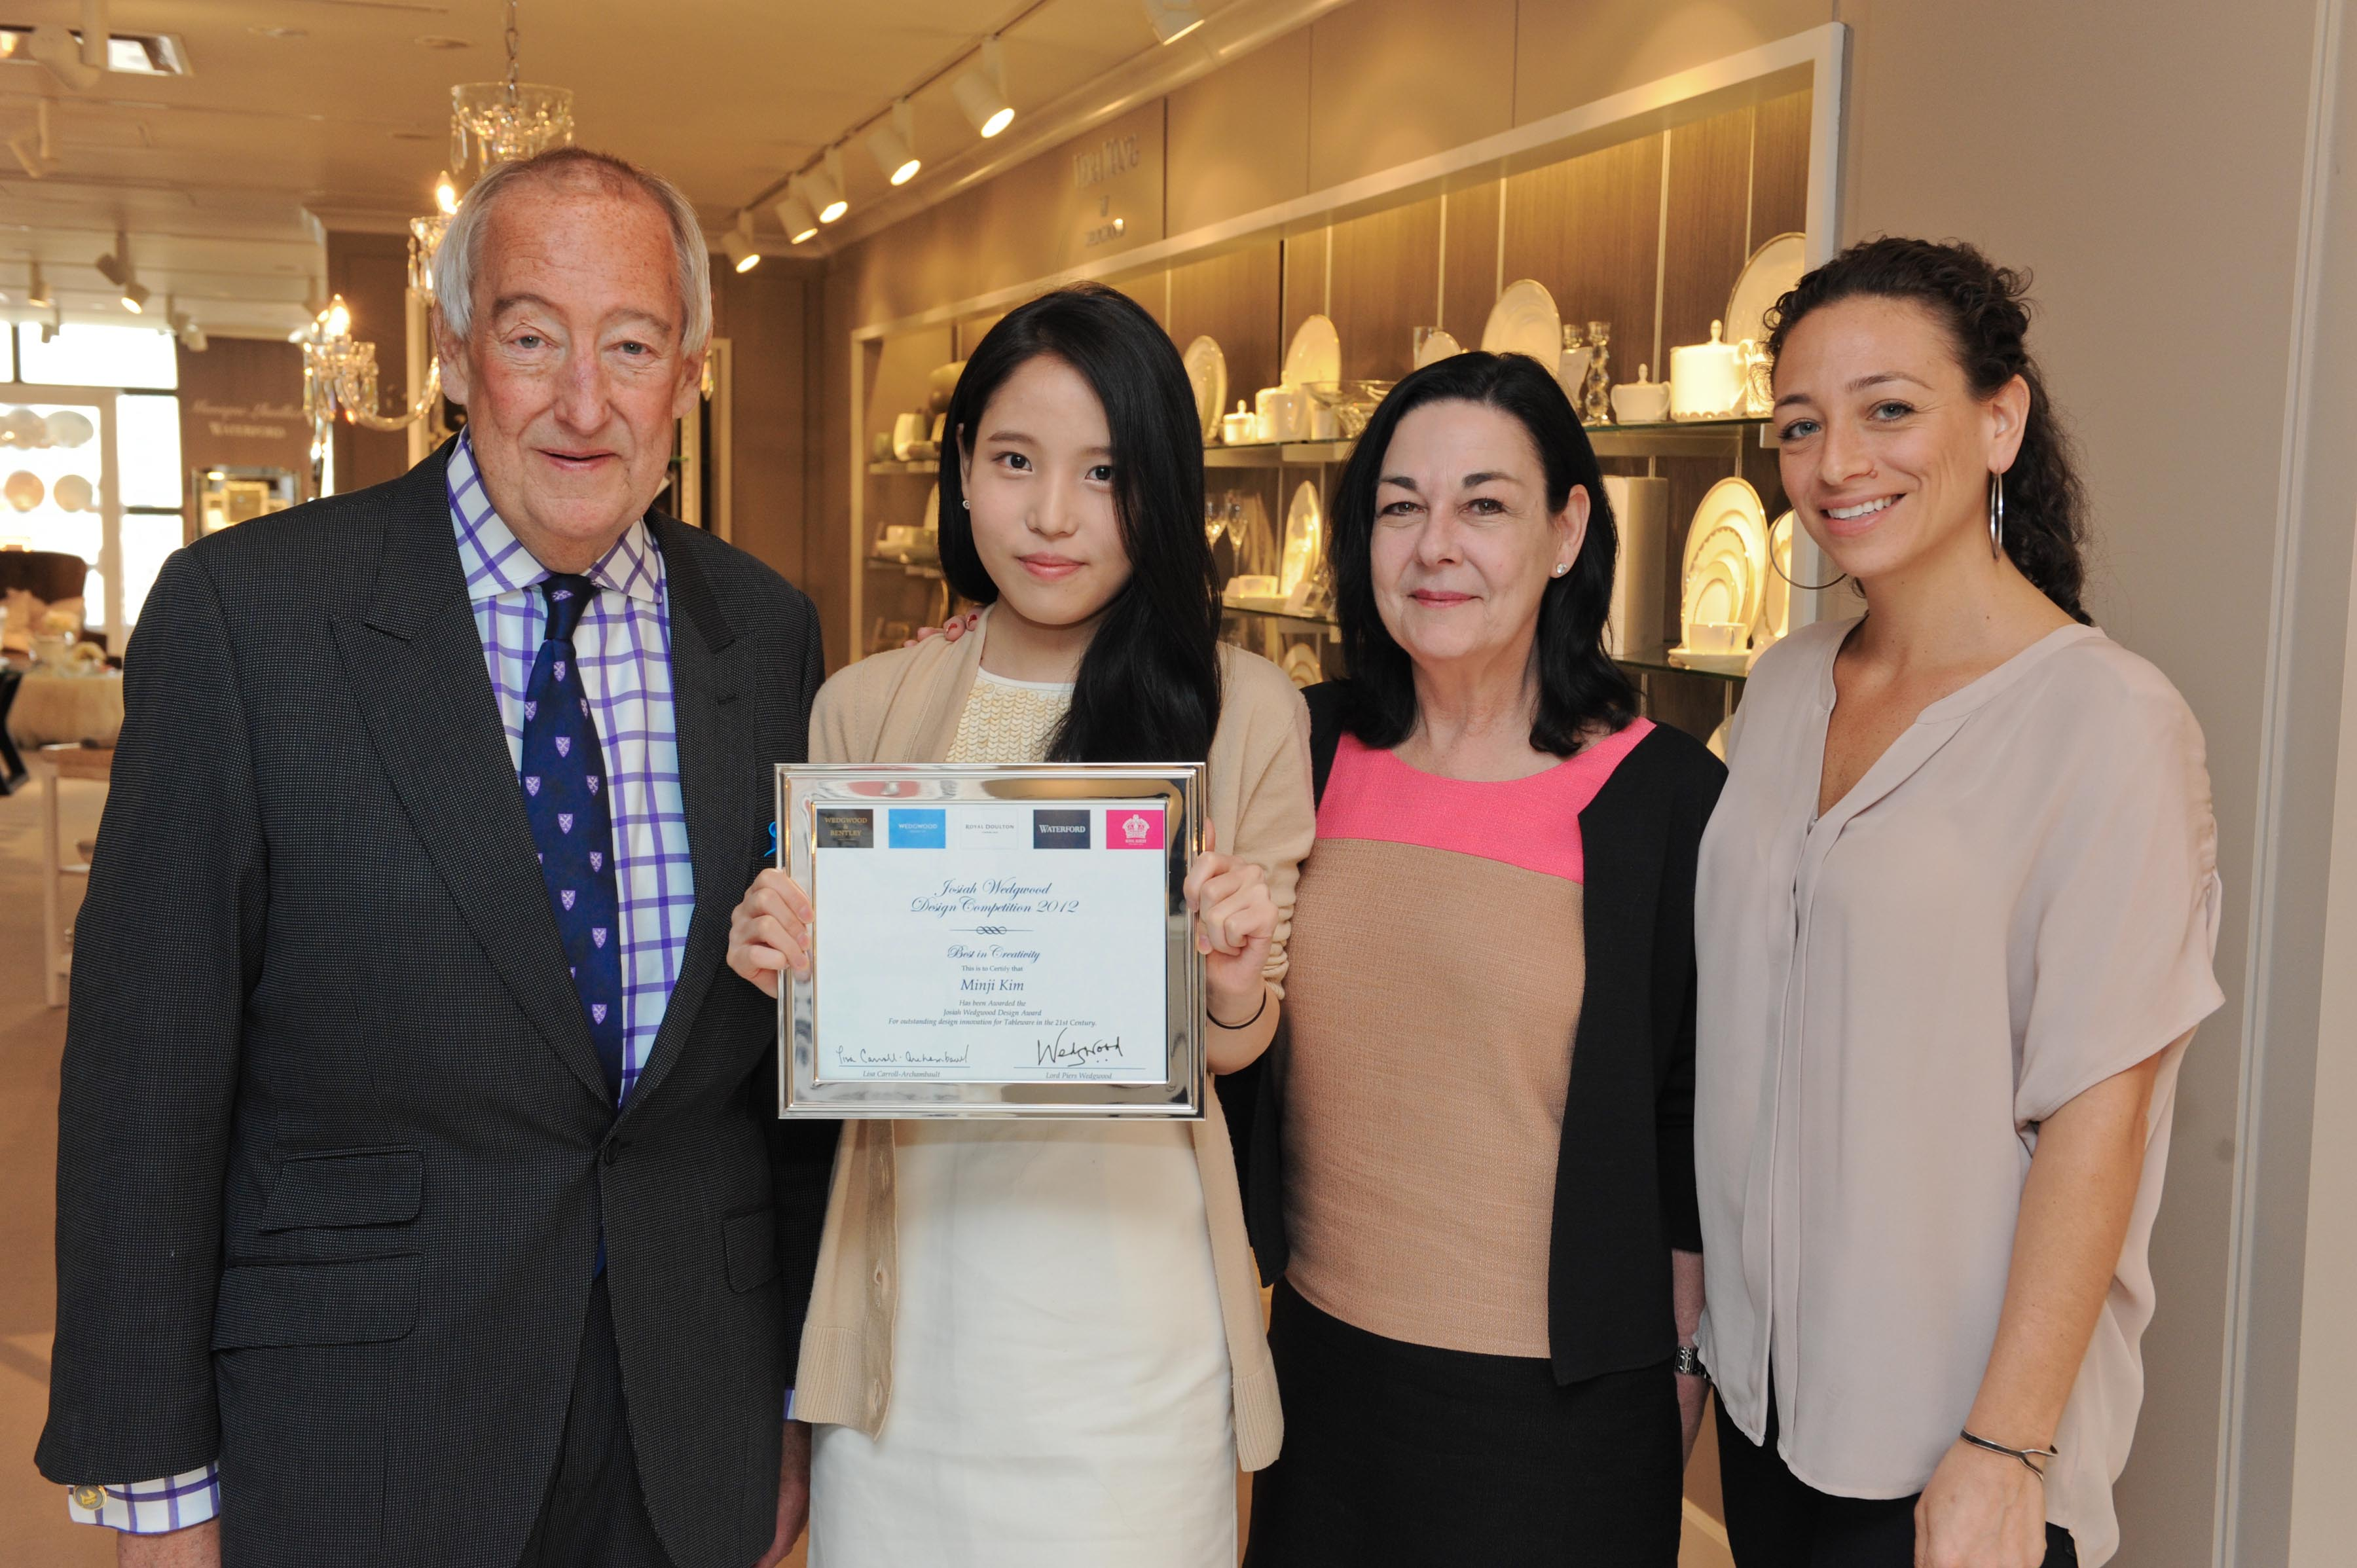 Winners announced in Wedgwood student design competition